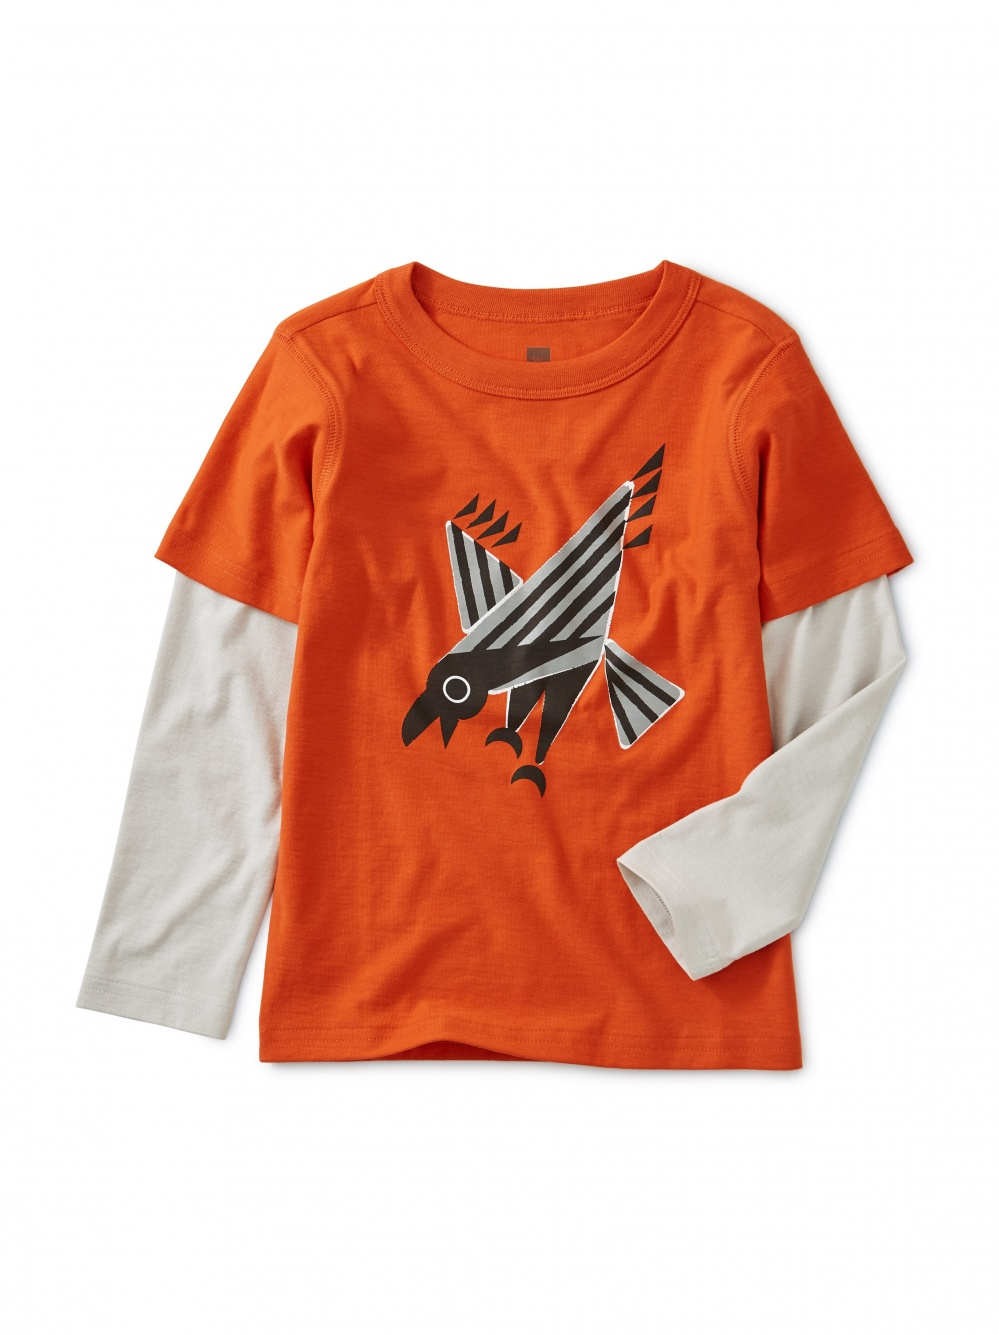 Raven-ous Graphic Layered Tee